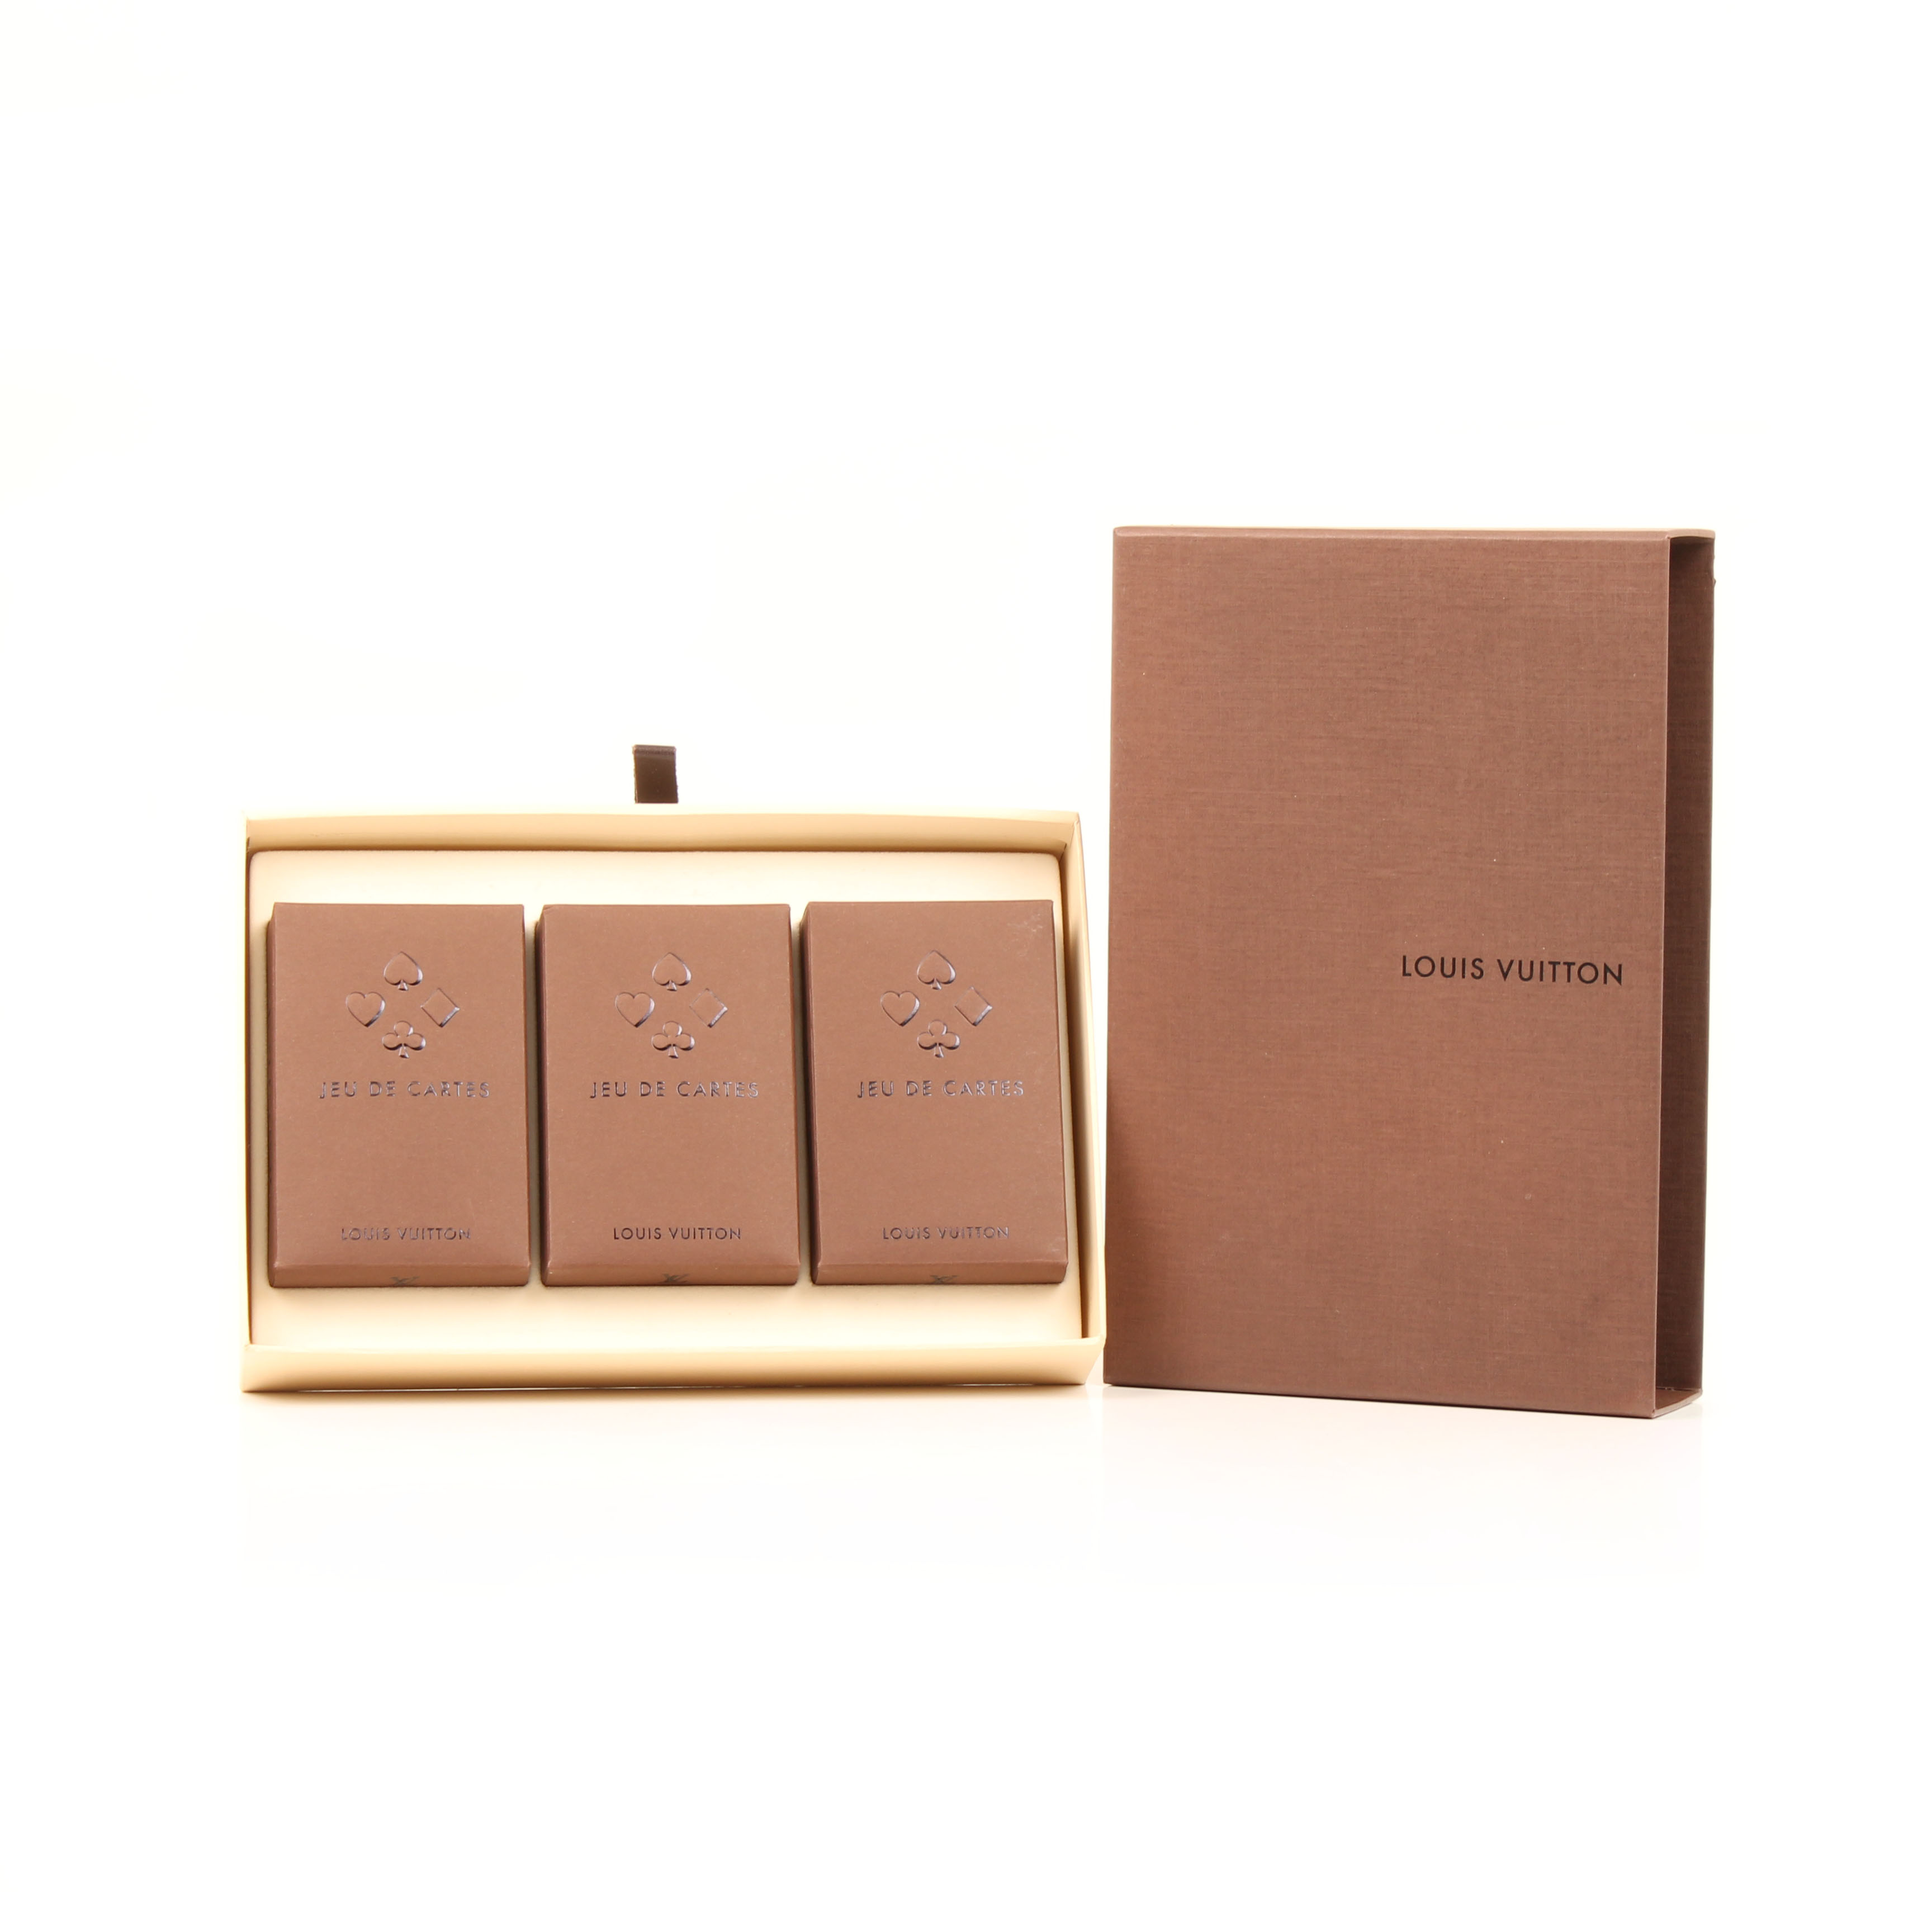 louis vuitton playing cards set French deck three general with box